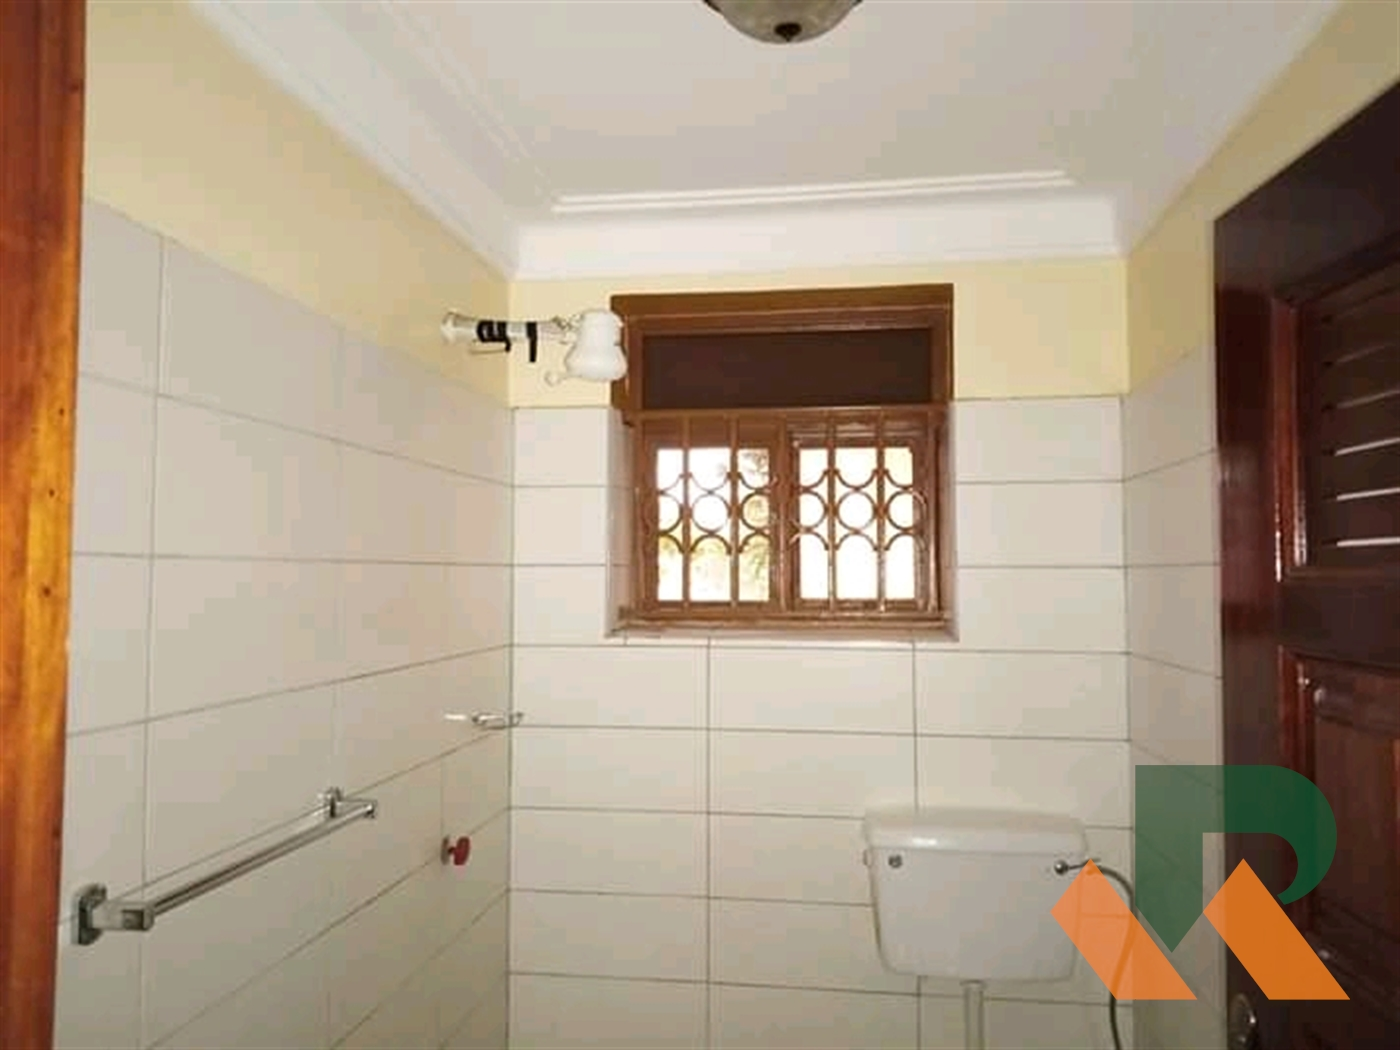 Apartment for rent in Kyaliwajjala Kampala